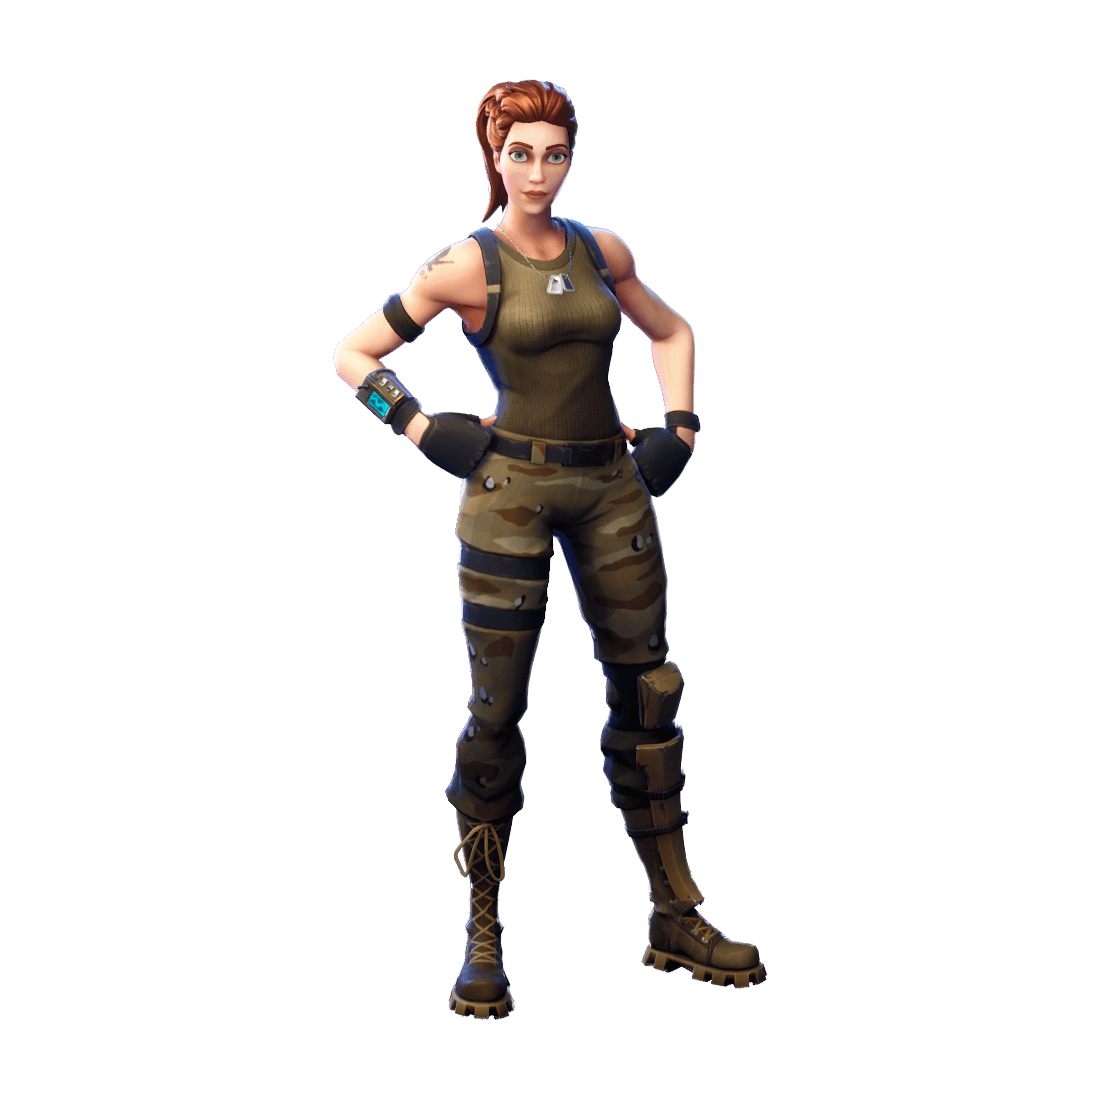 Uncommon Tower Recon Specialist Outfit Fortnite Cosmetic Cost 800 V